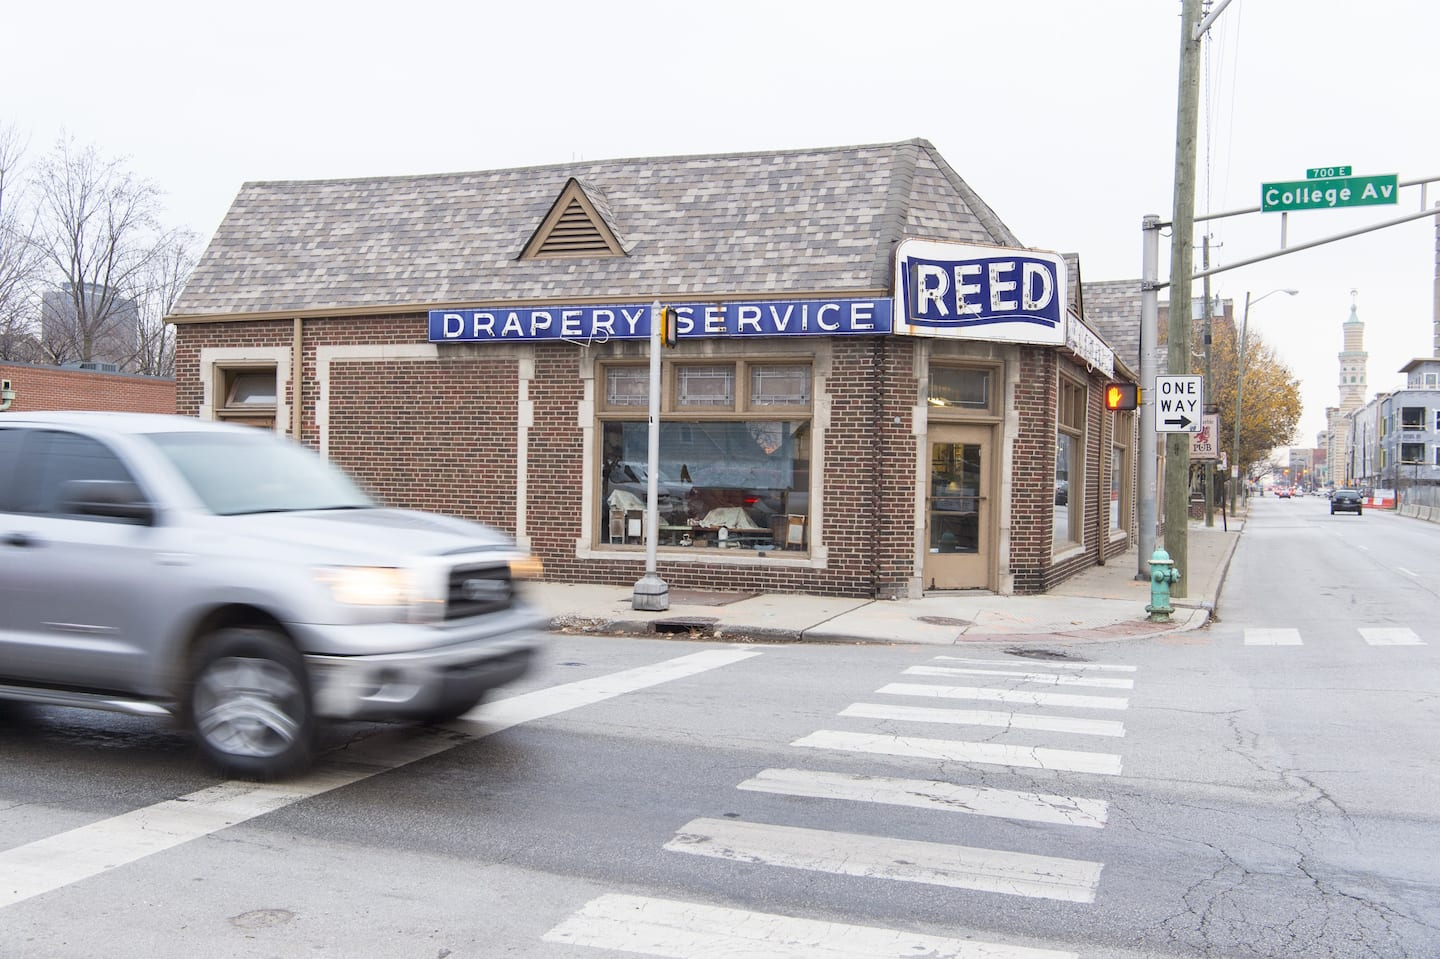 Street view of Reed Drapery Service